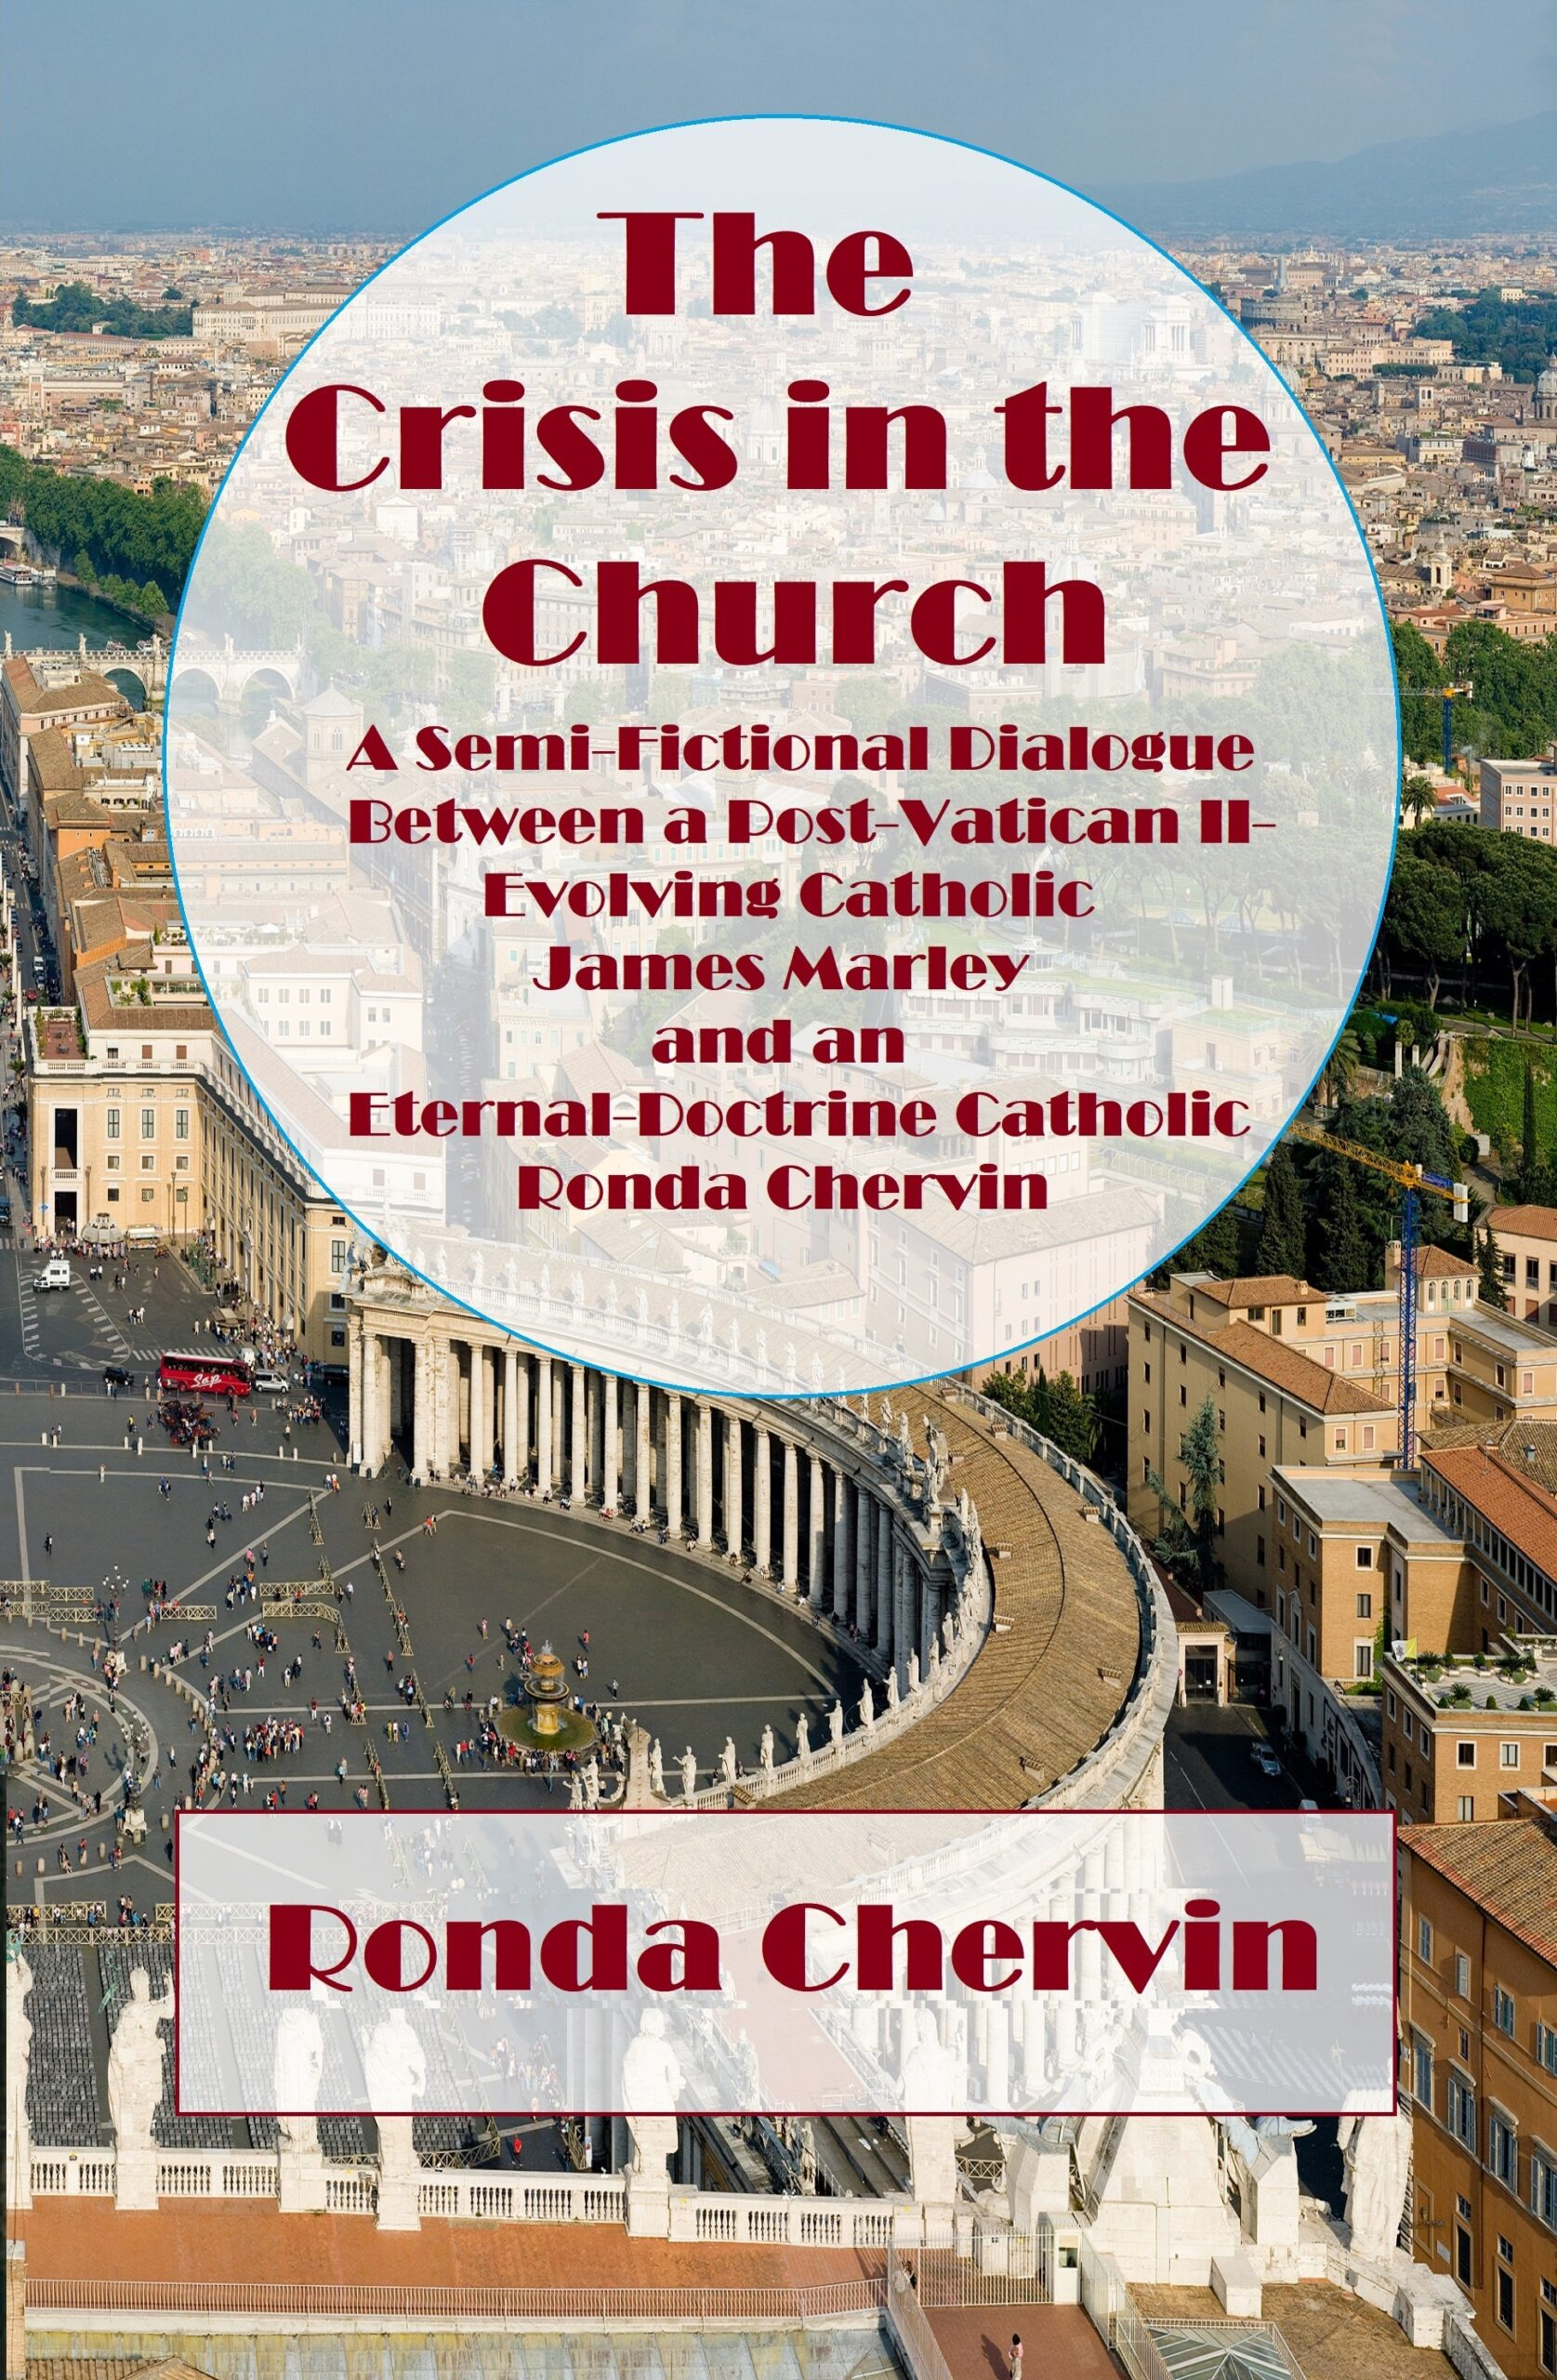 The Crisis in the Church